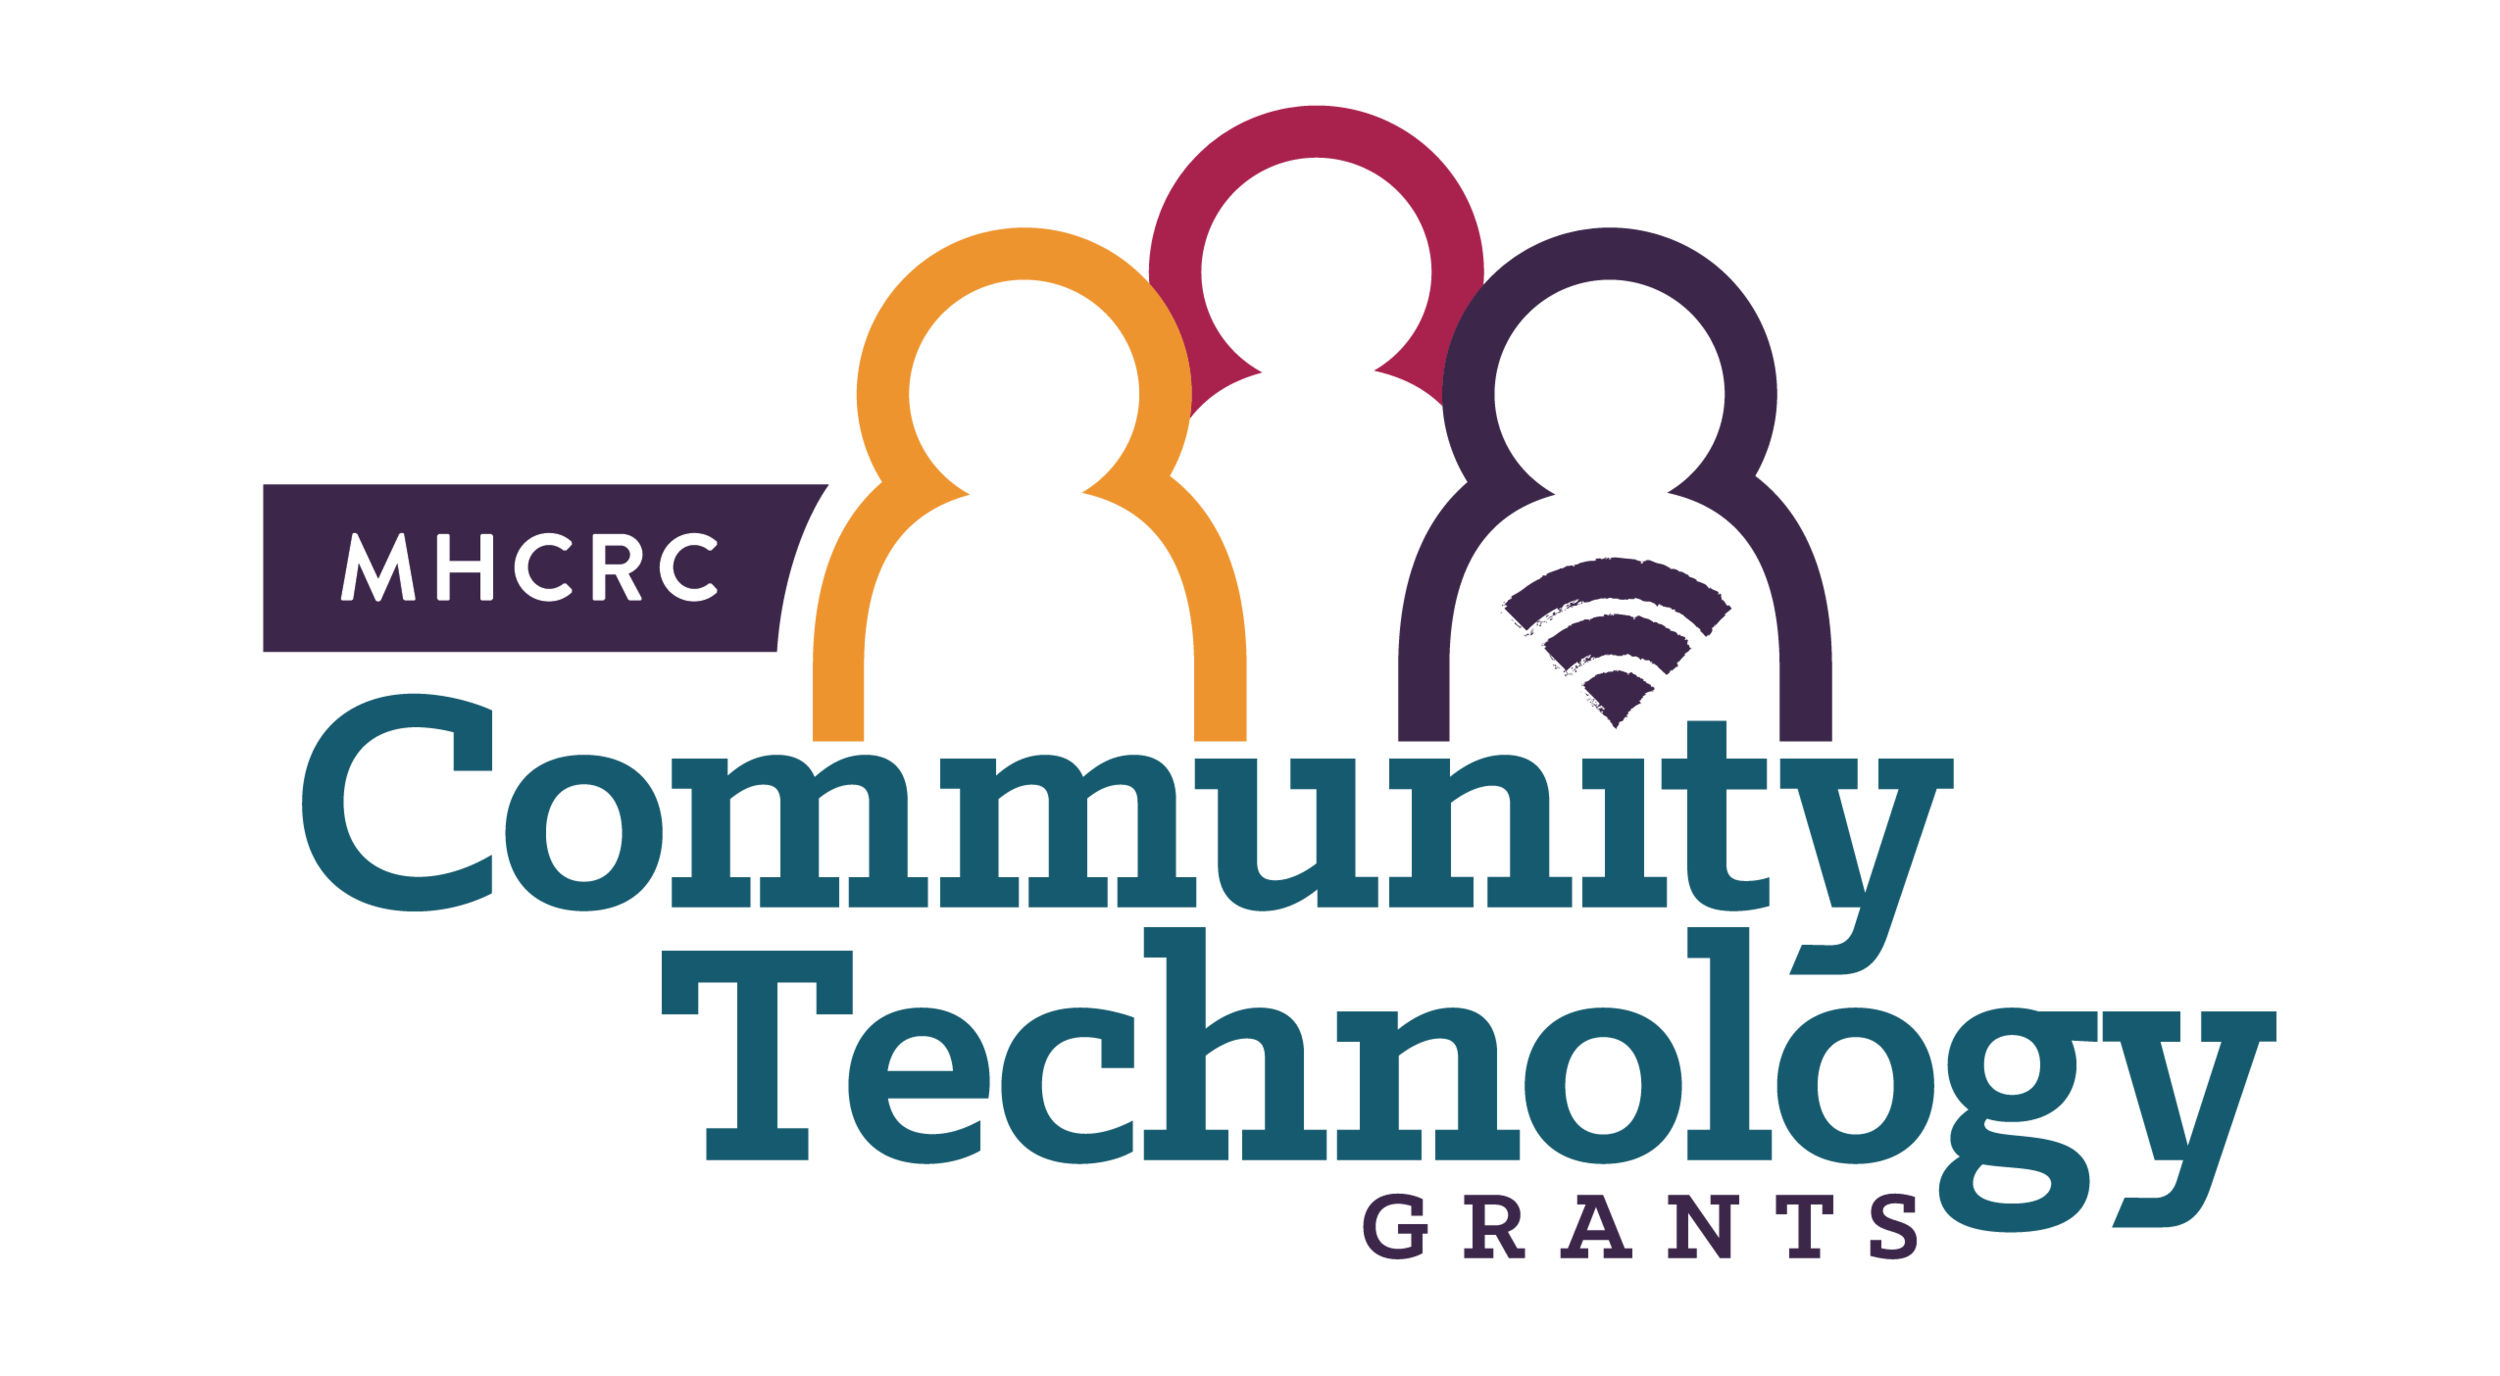 Community_Technology_Logo_300ppi.png